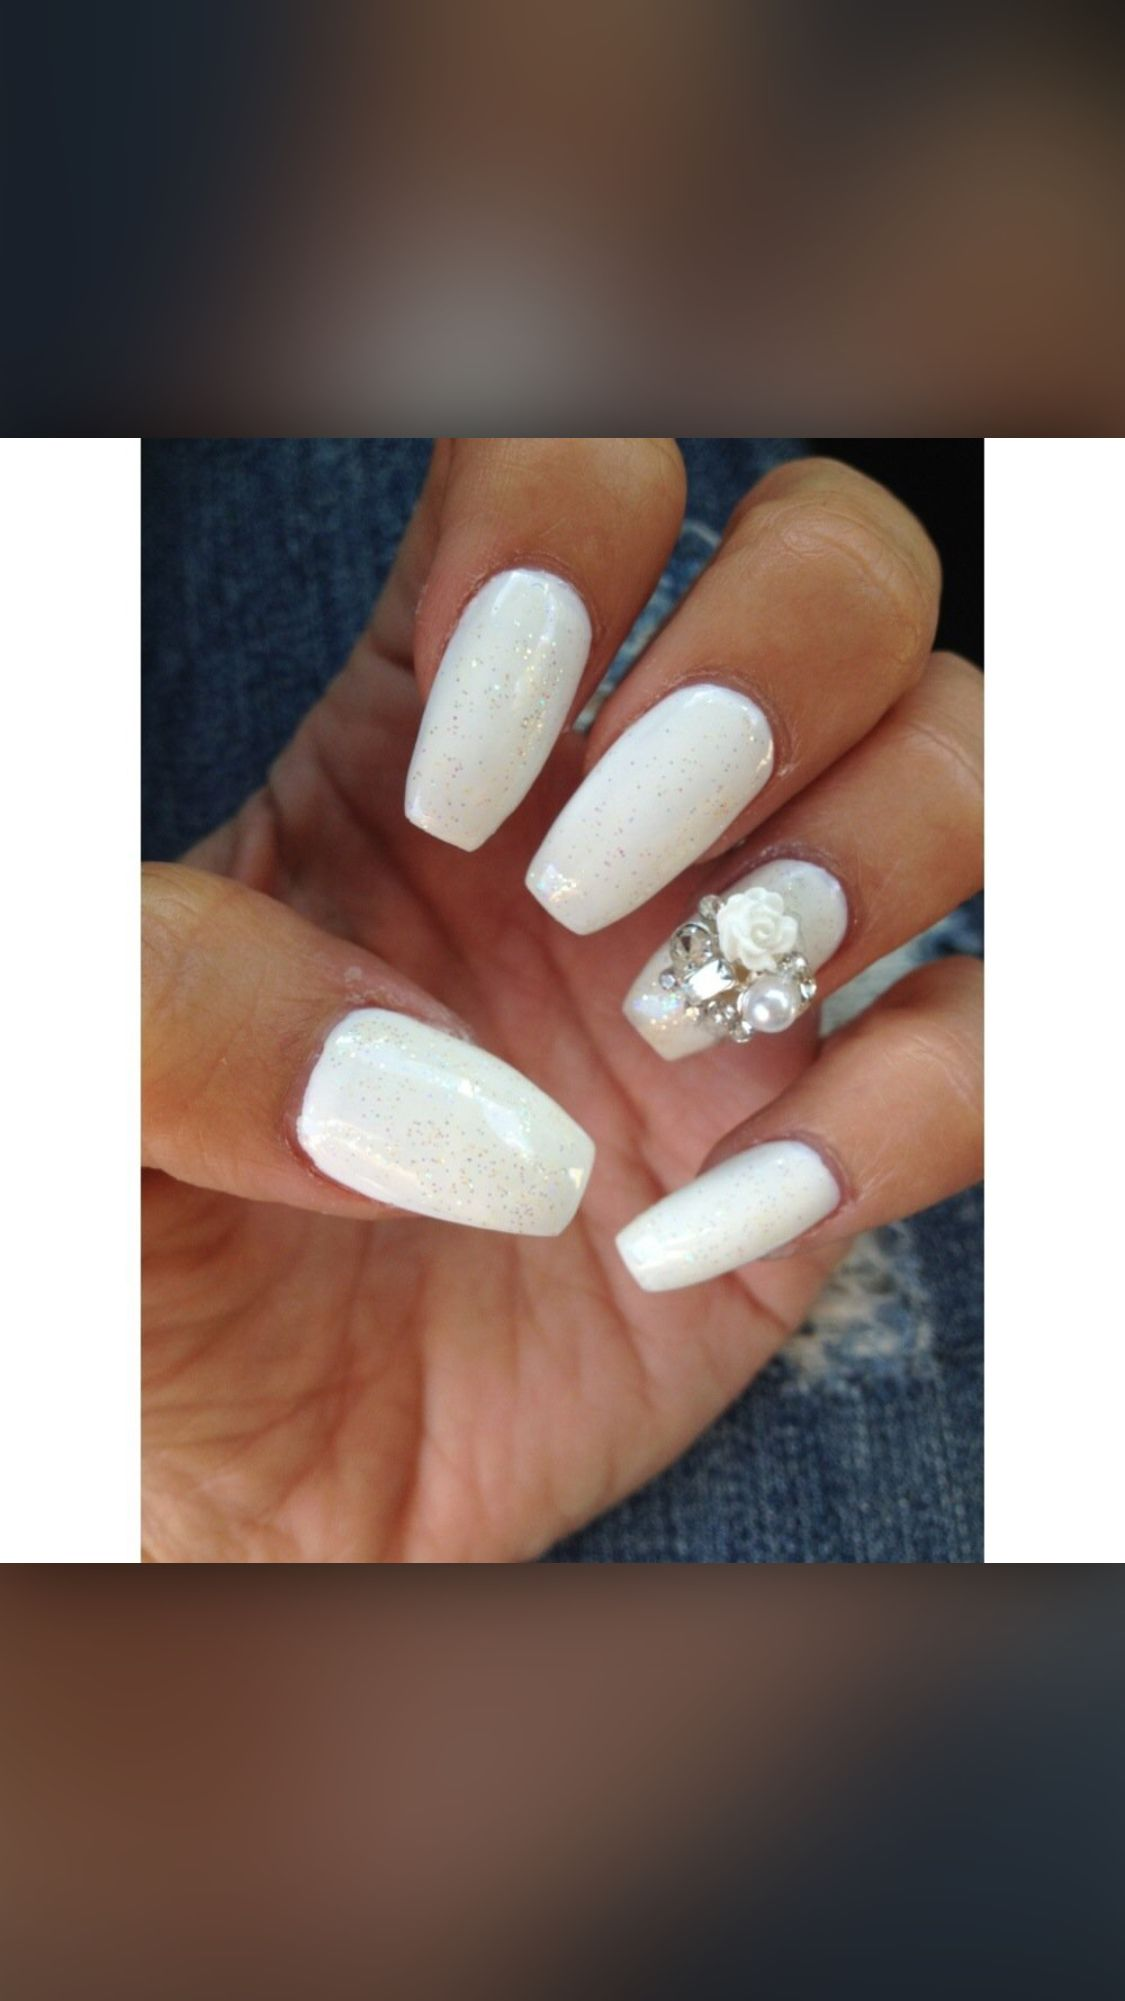 White Gelacrylic Coffin Shaped Nails Nails In 2018 Pinterest